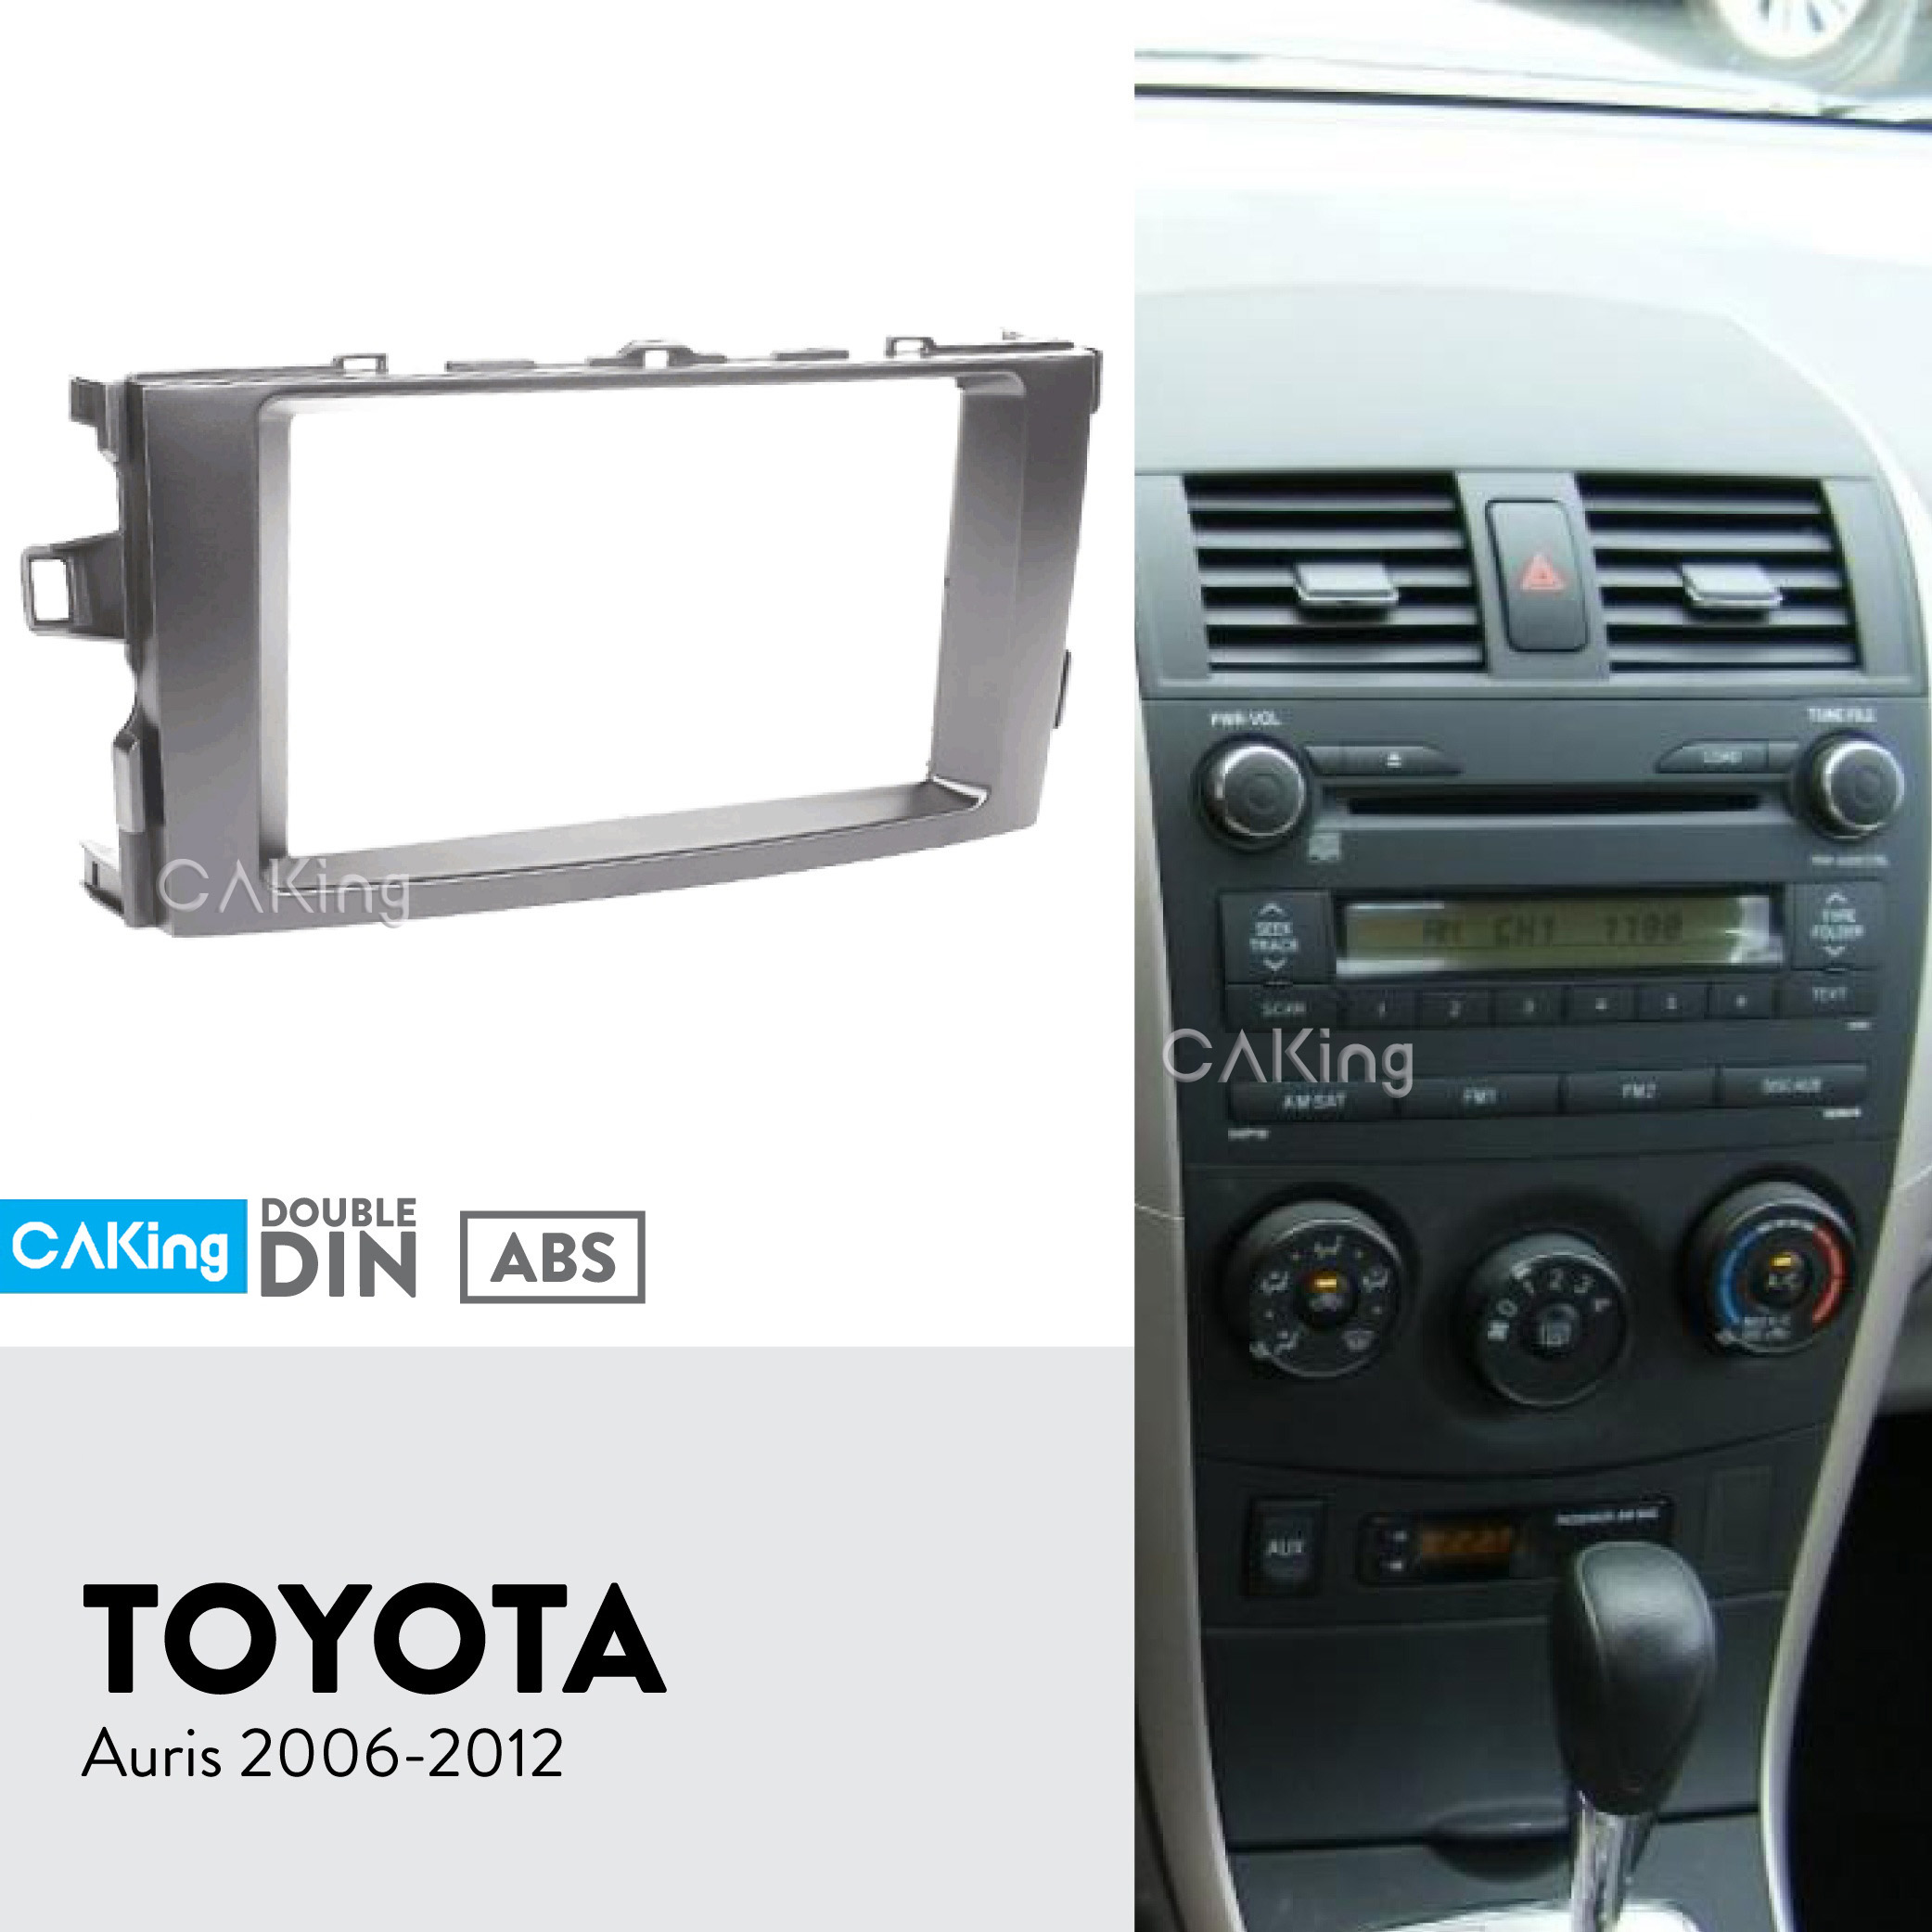 Double DIN Car Stereo Fascia Fitting Kit Steering Control for Toyota Prius 2010/>